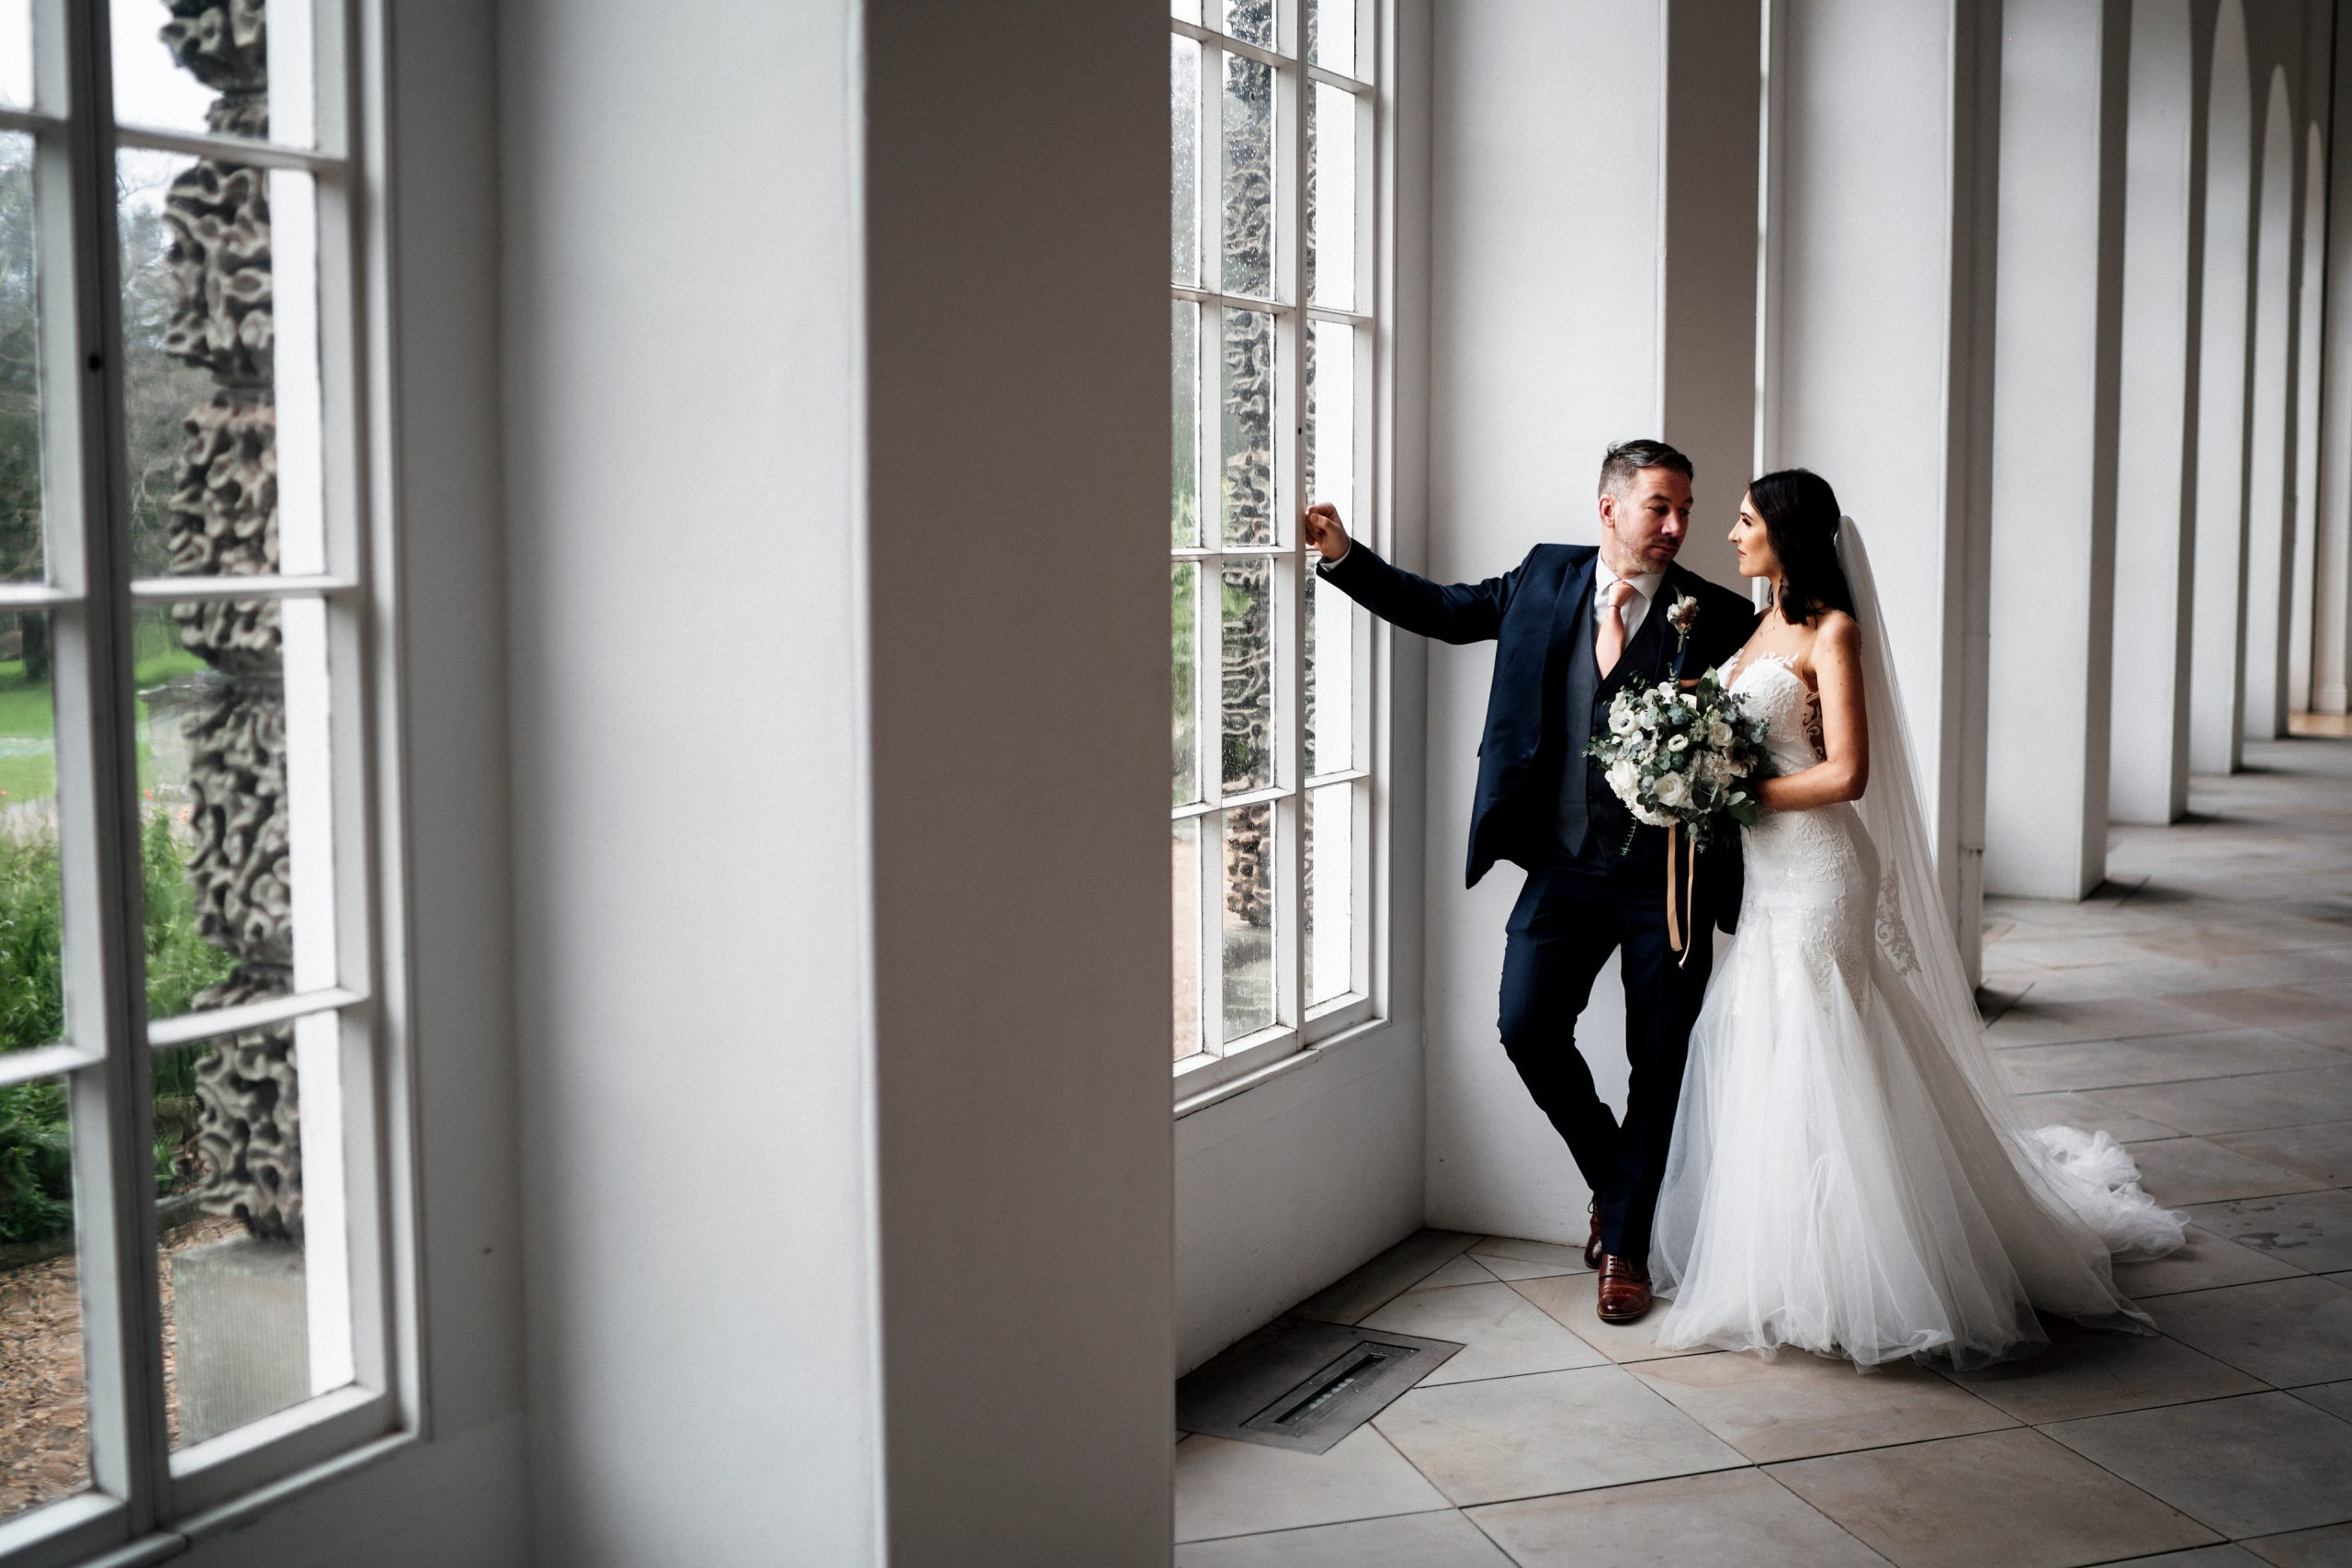 Bride and groom stand next to a giant window| Perfect day for the bride and groom